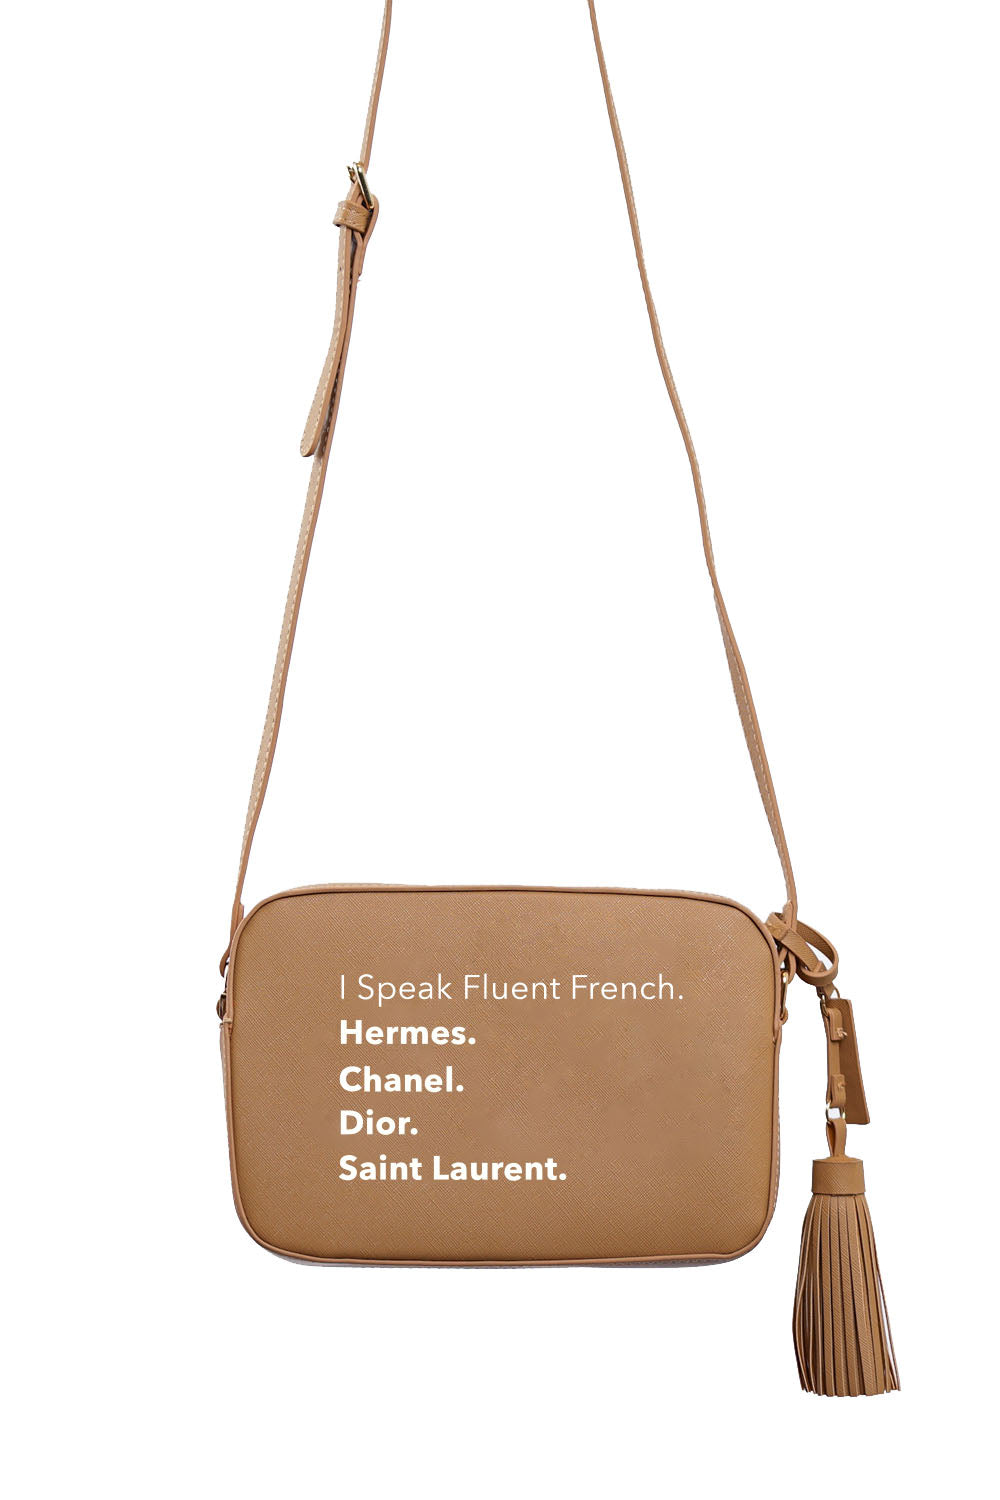 VEGAN CROSSBODY BAG - Fluent French (Tan)